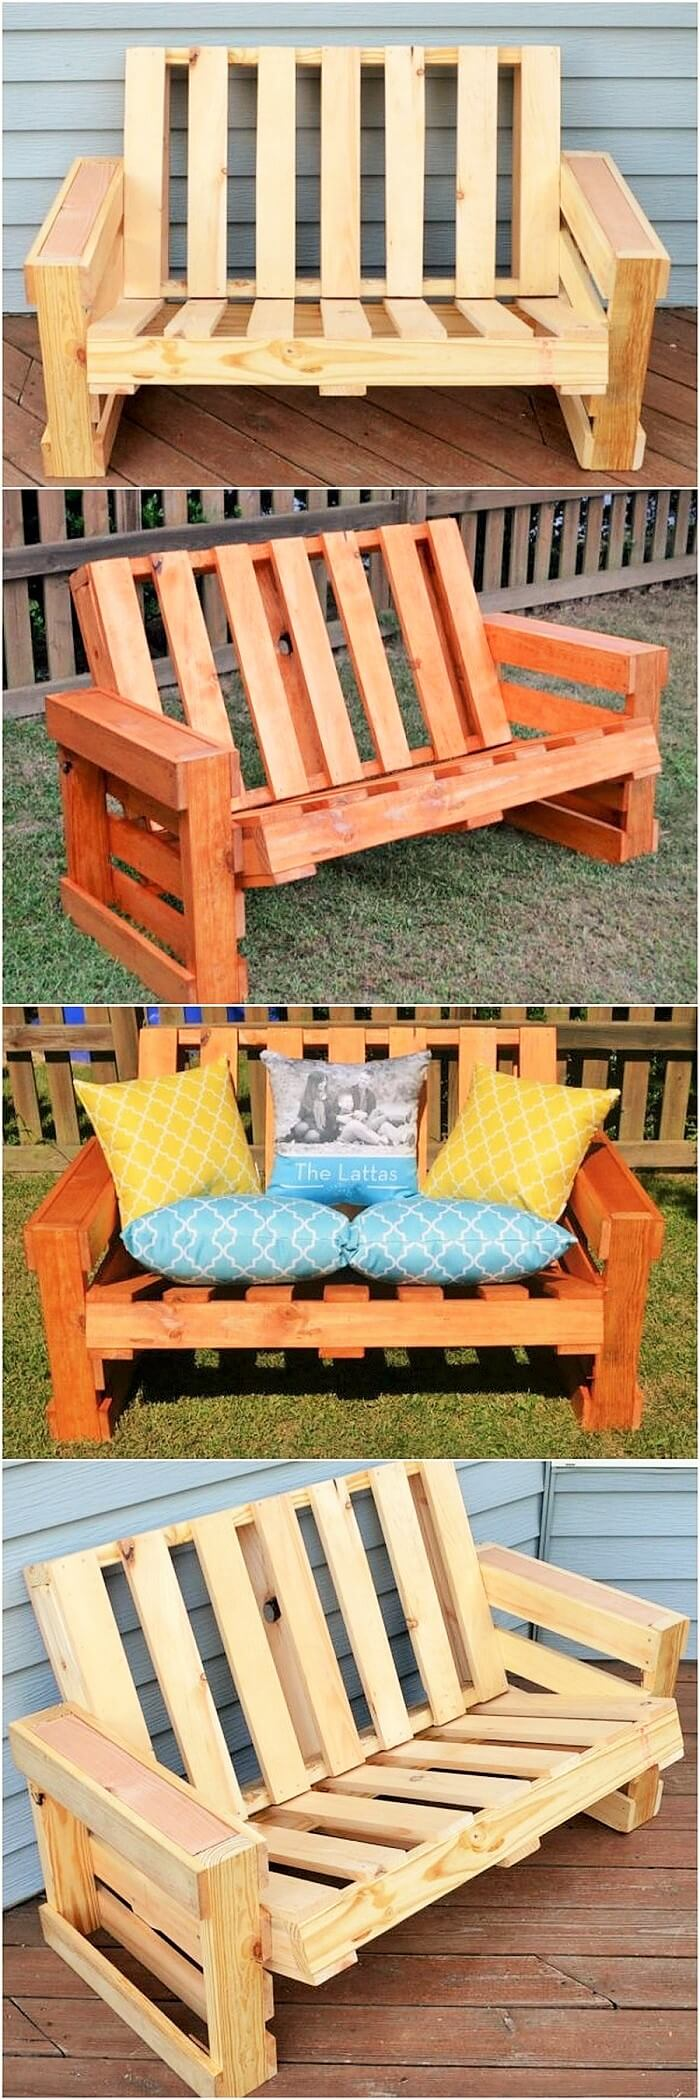 wooden-pallet-bench-for-patio-by-One-Artsy-Mama-featured